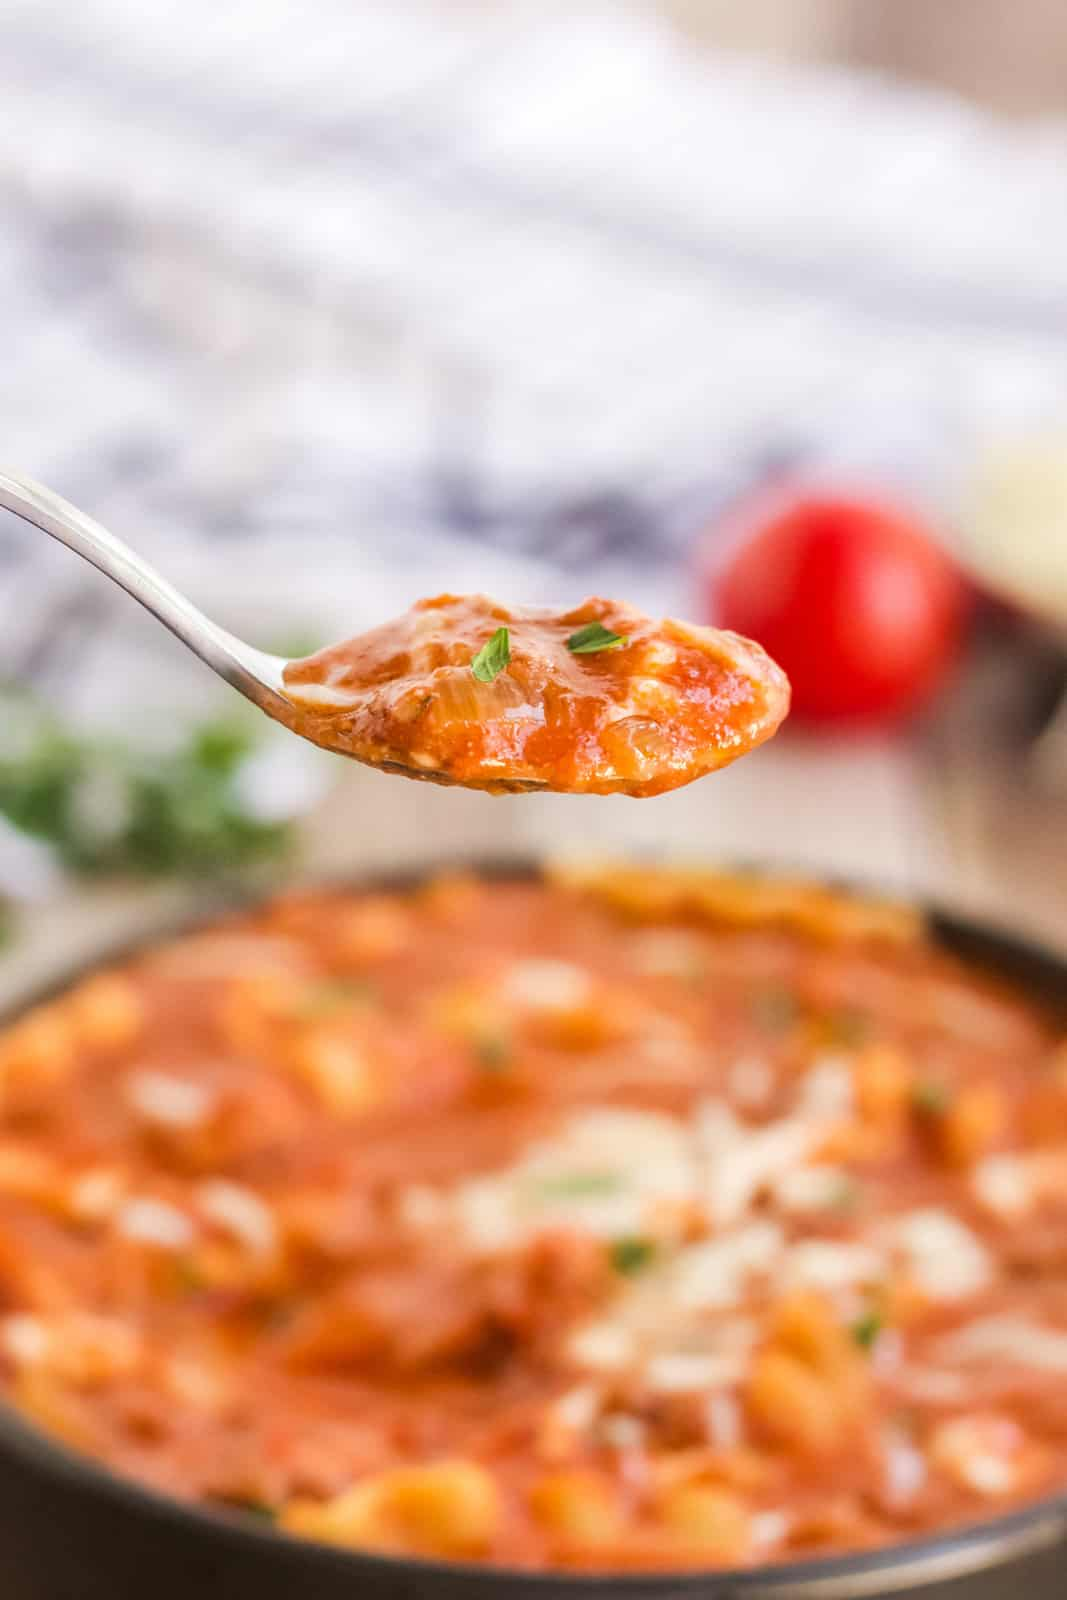 Spoon holding up spoonful of lasagna soup